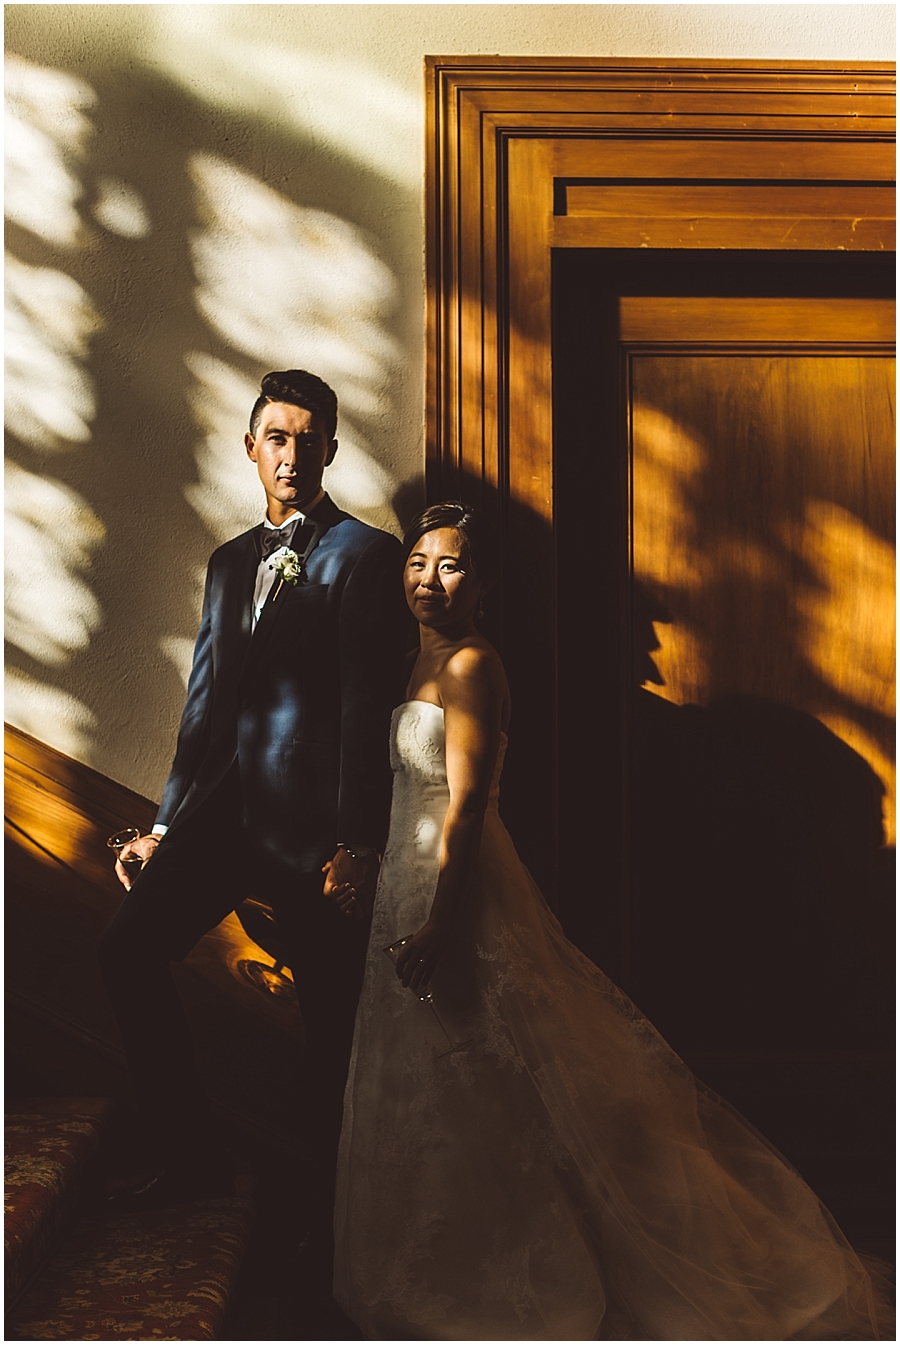 Tom+Kate_stevecowellphoto_0076.jpg